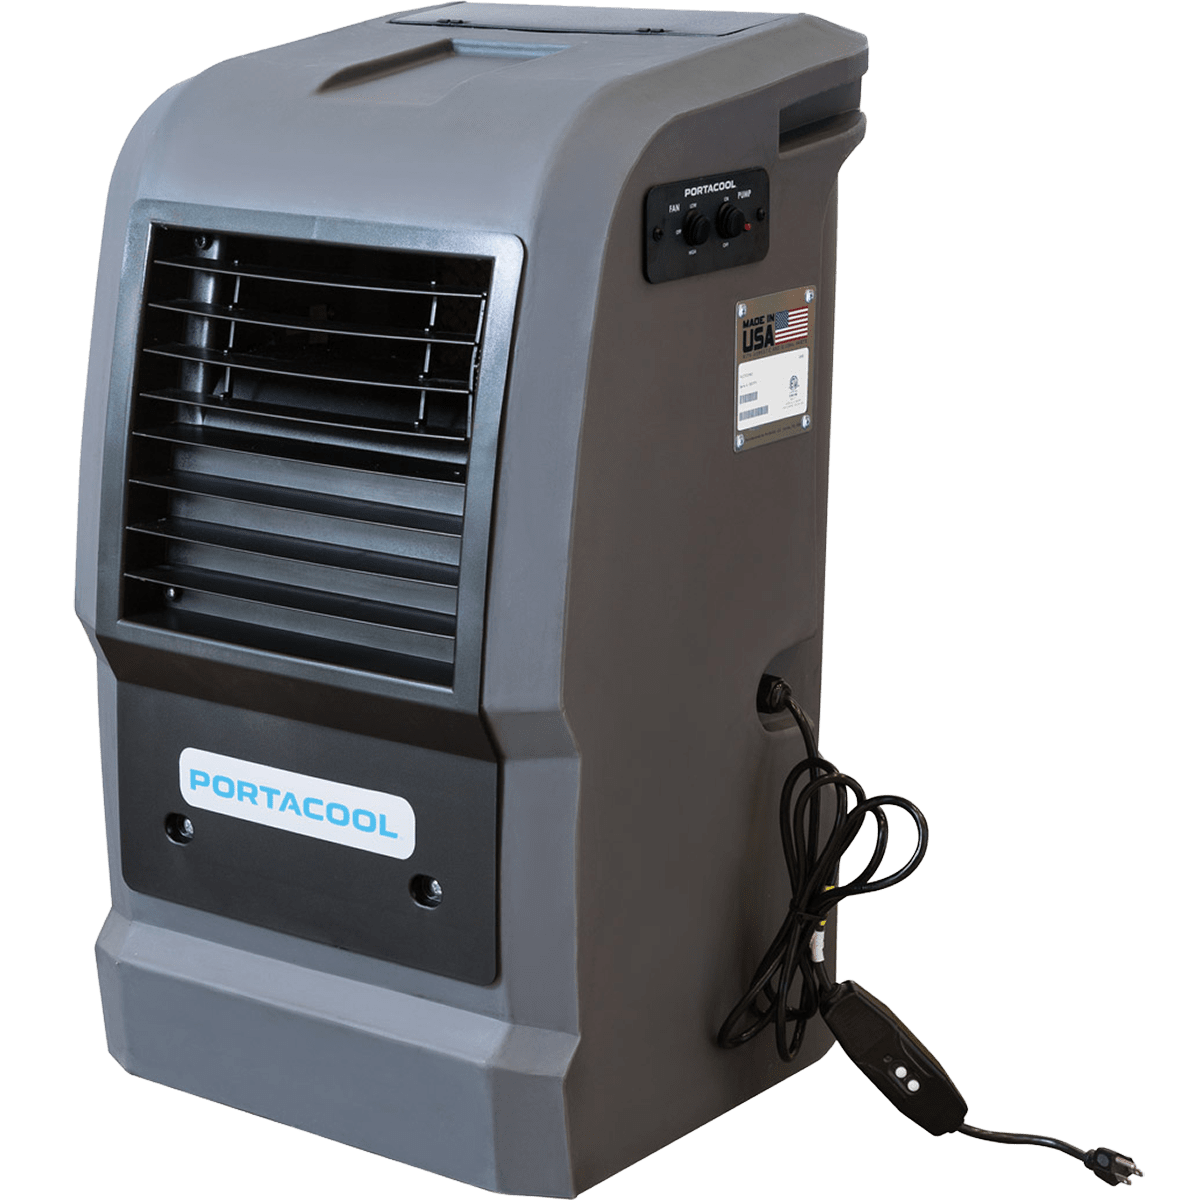 Portacool Cyclone 110 Portable Evaporative Cooler Model: PACCY110GA1